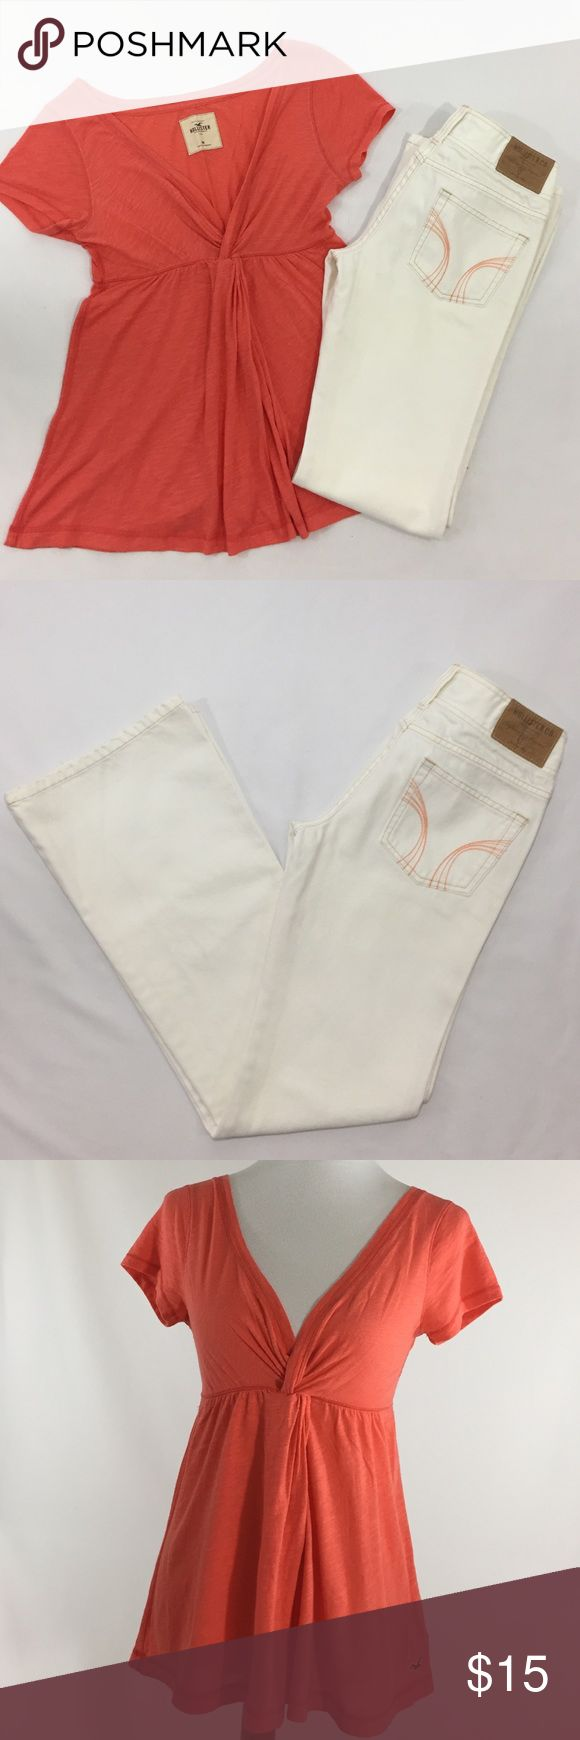 "HOLLISTER Bundle Jeans & Tee Size 3 & Medium HOLLISTER White boot cut jeans size 3 coral stitching detail on pant pockets. HOLLISTER Size medium plunging V-neck coral loose T-shirt. Both in excellent condition!! Pant measurements laying flat: Waist 14"" Length 31"" (crotch to end of pant leg) Pant leg opening 9"" Hollister Jeans Boot Cut"